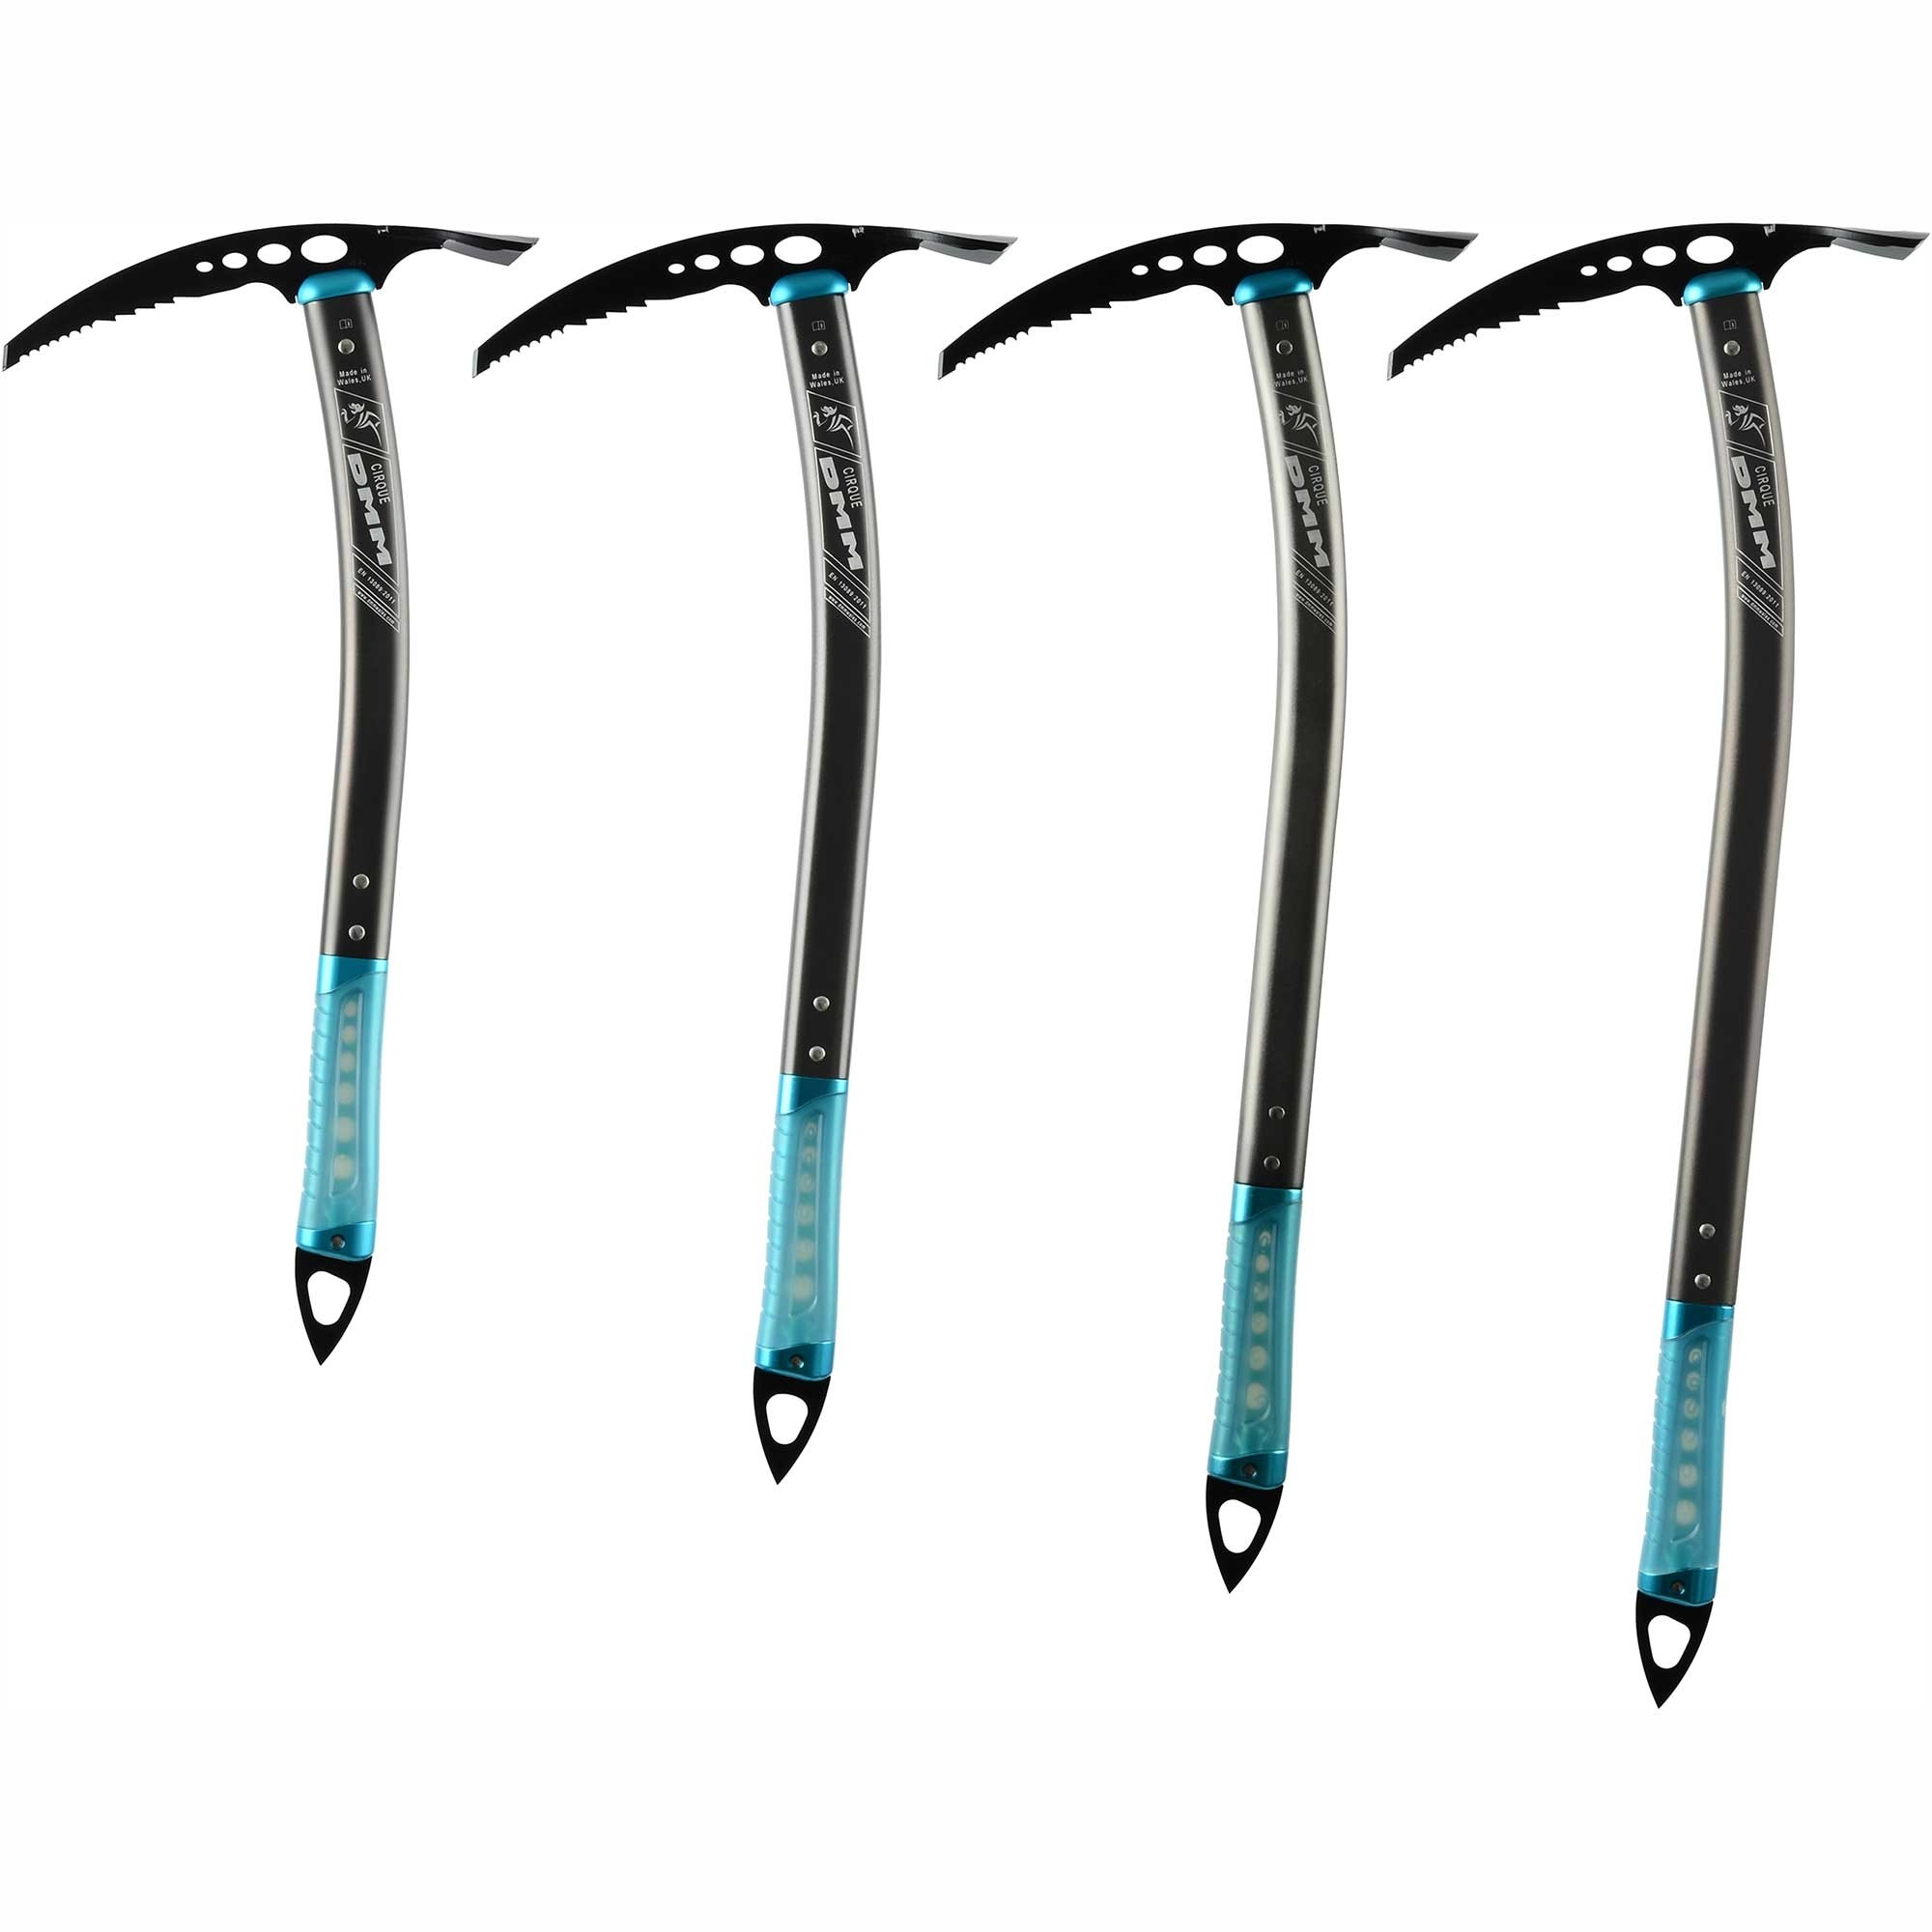 DMM Cirque Ice Axe Lengths (please note these are the old colour)